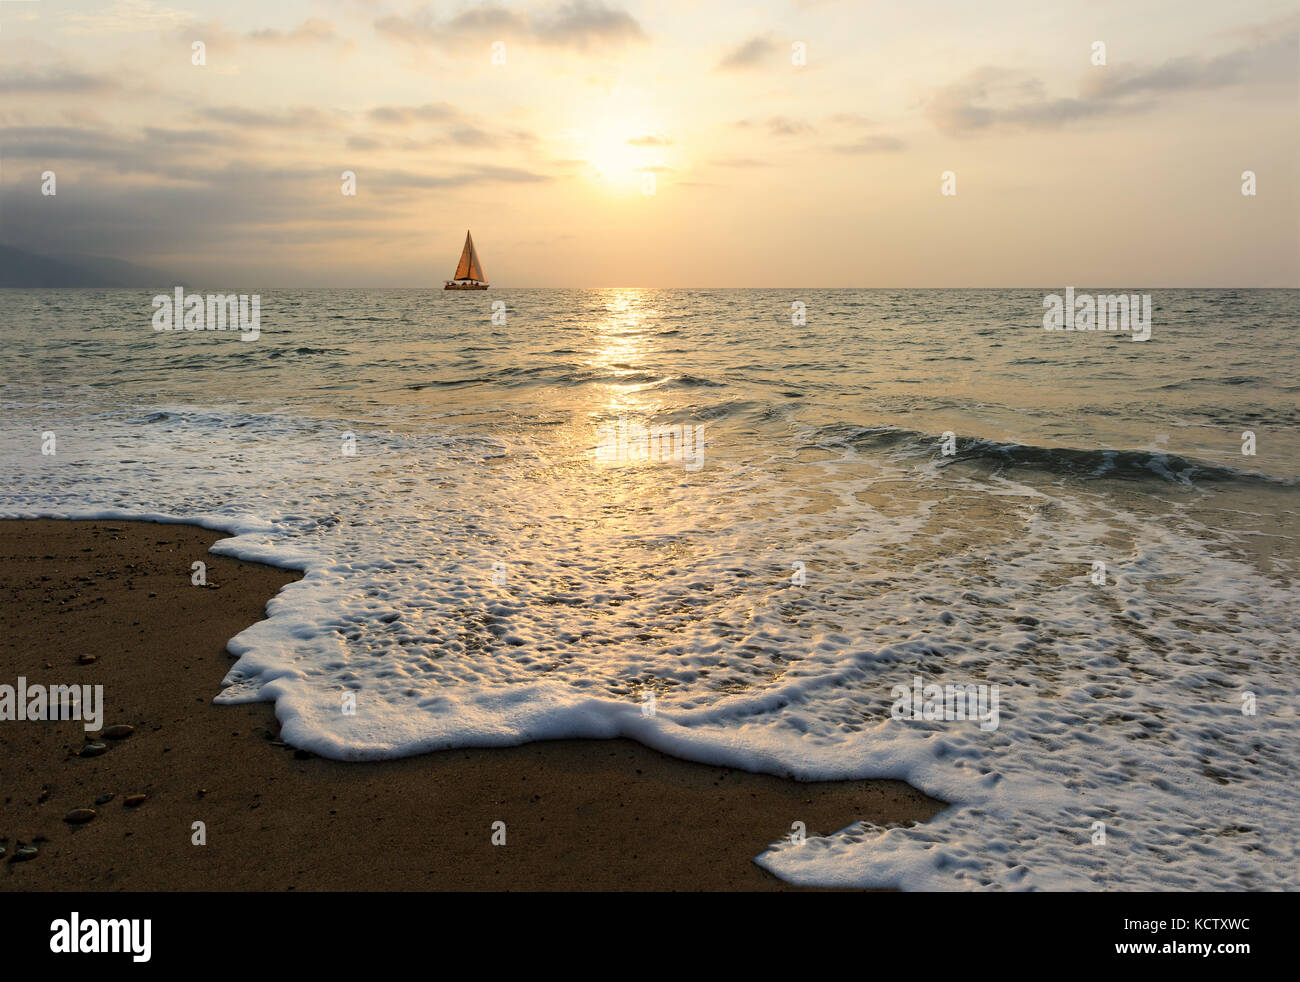 Sunset sailboat is a sailboat sailing along the ocean at sunset with the moon rising in the sky as a wave rolls Stock Photo